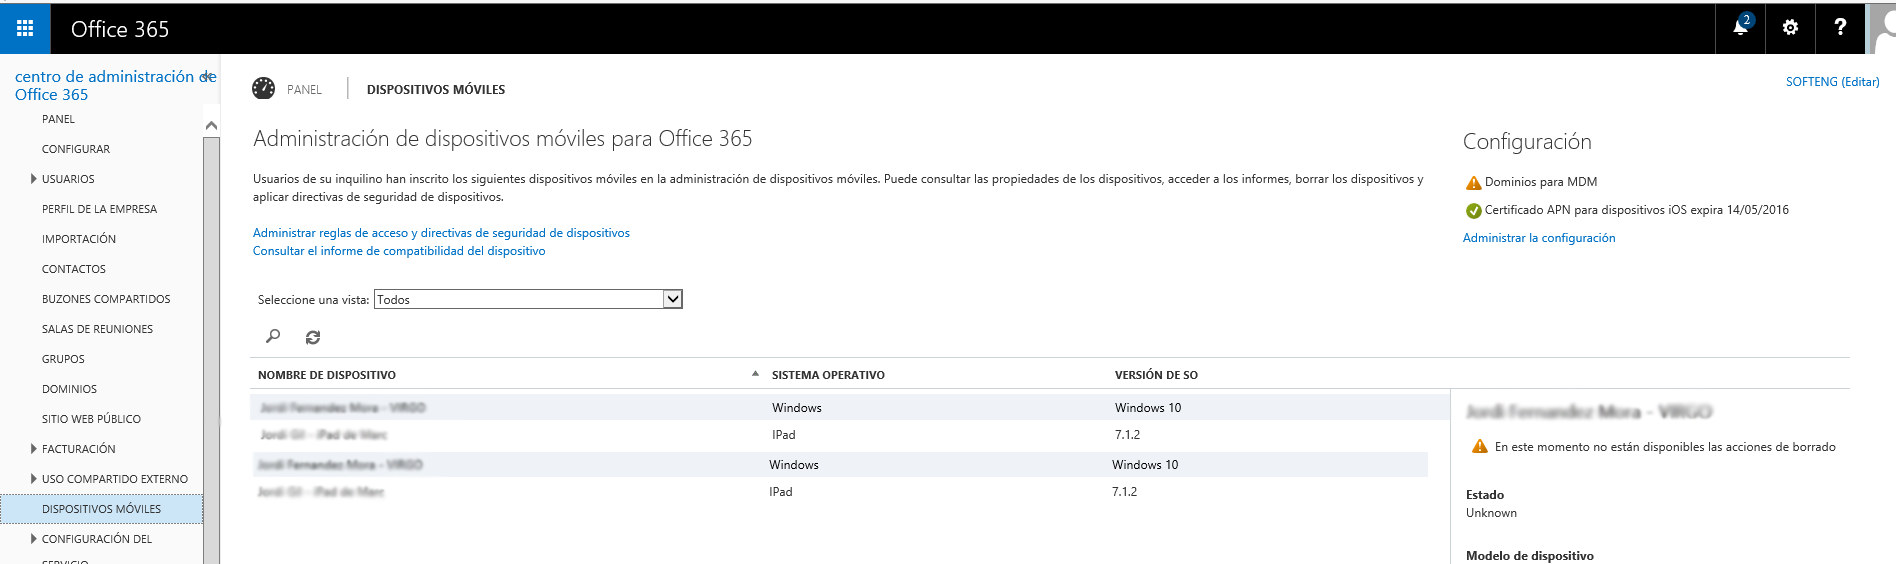 How to manage devices that can access Microsoft Office 365